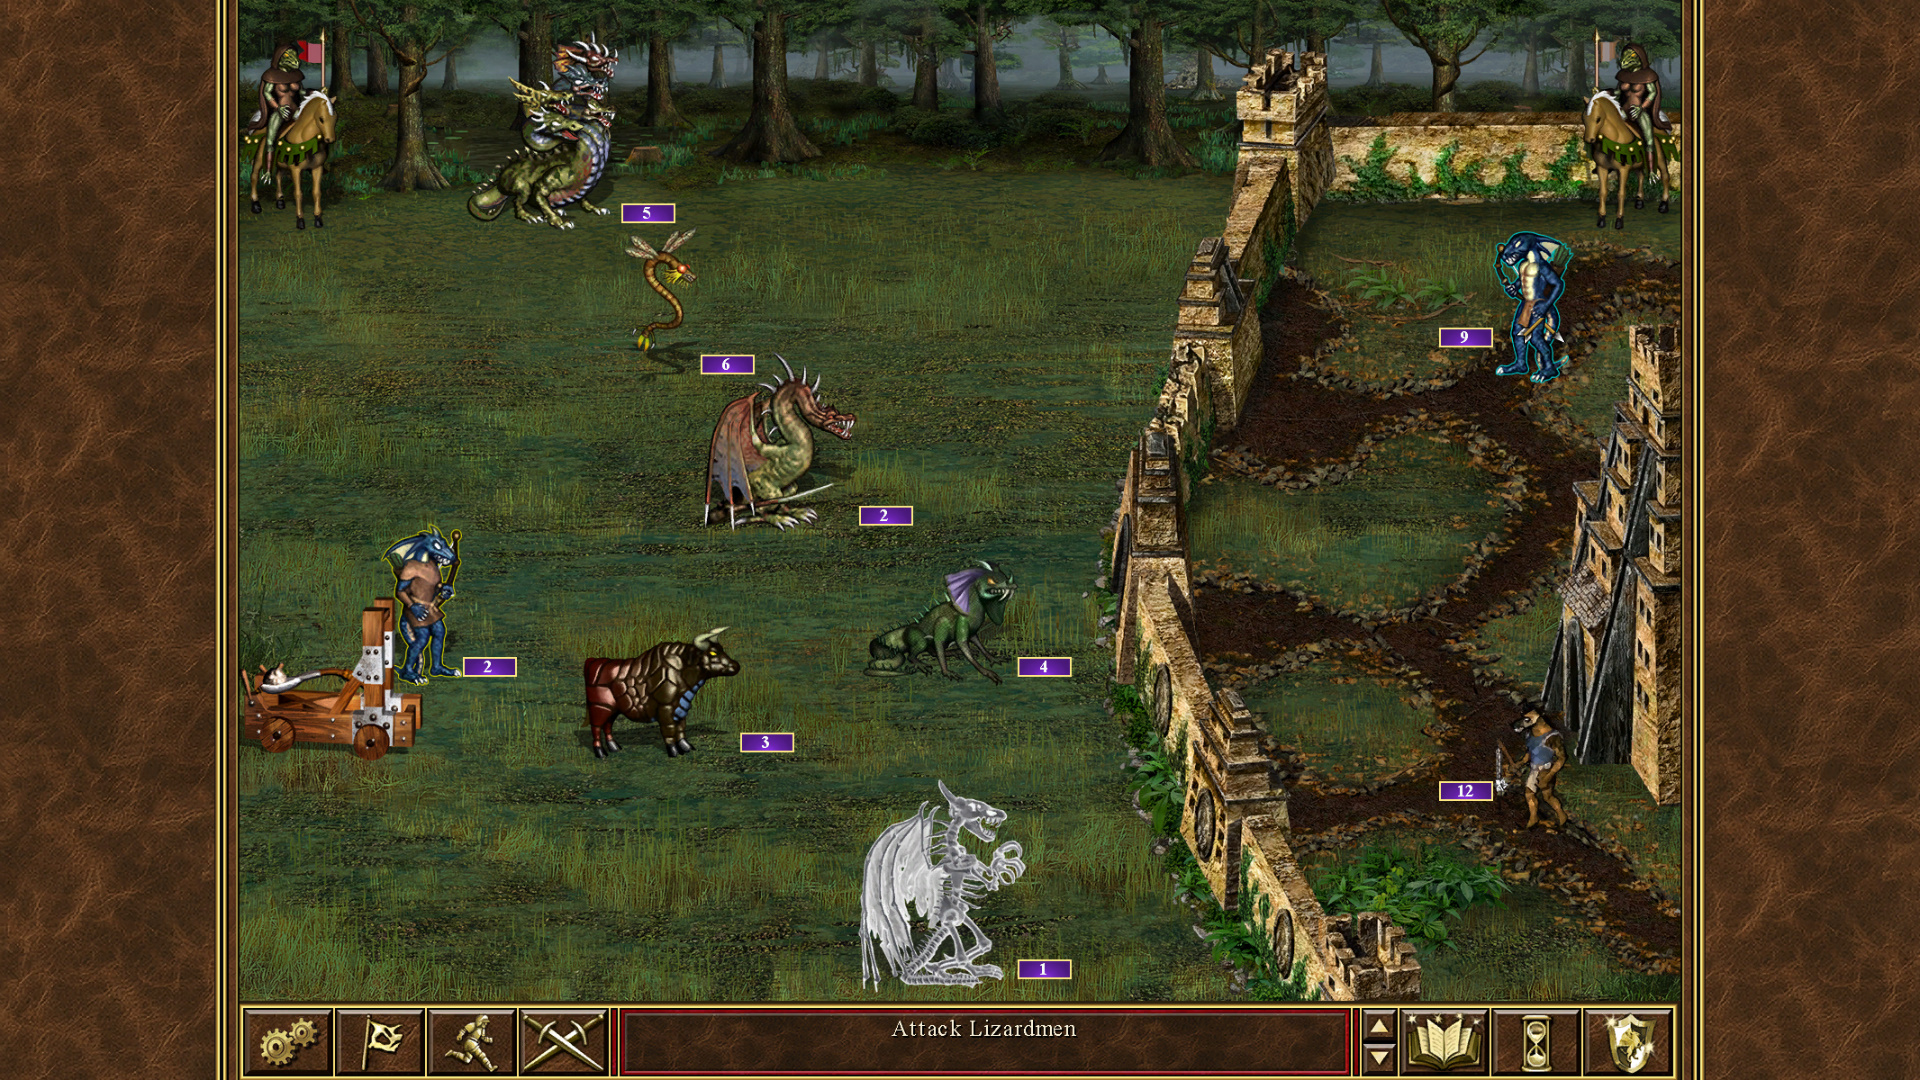 heroes of might and magic 3 hd download pc